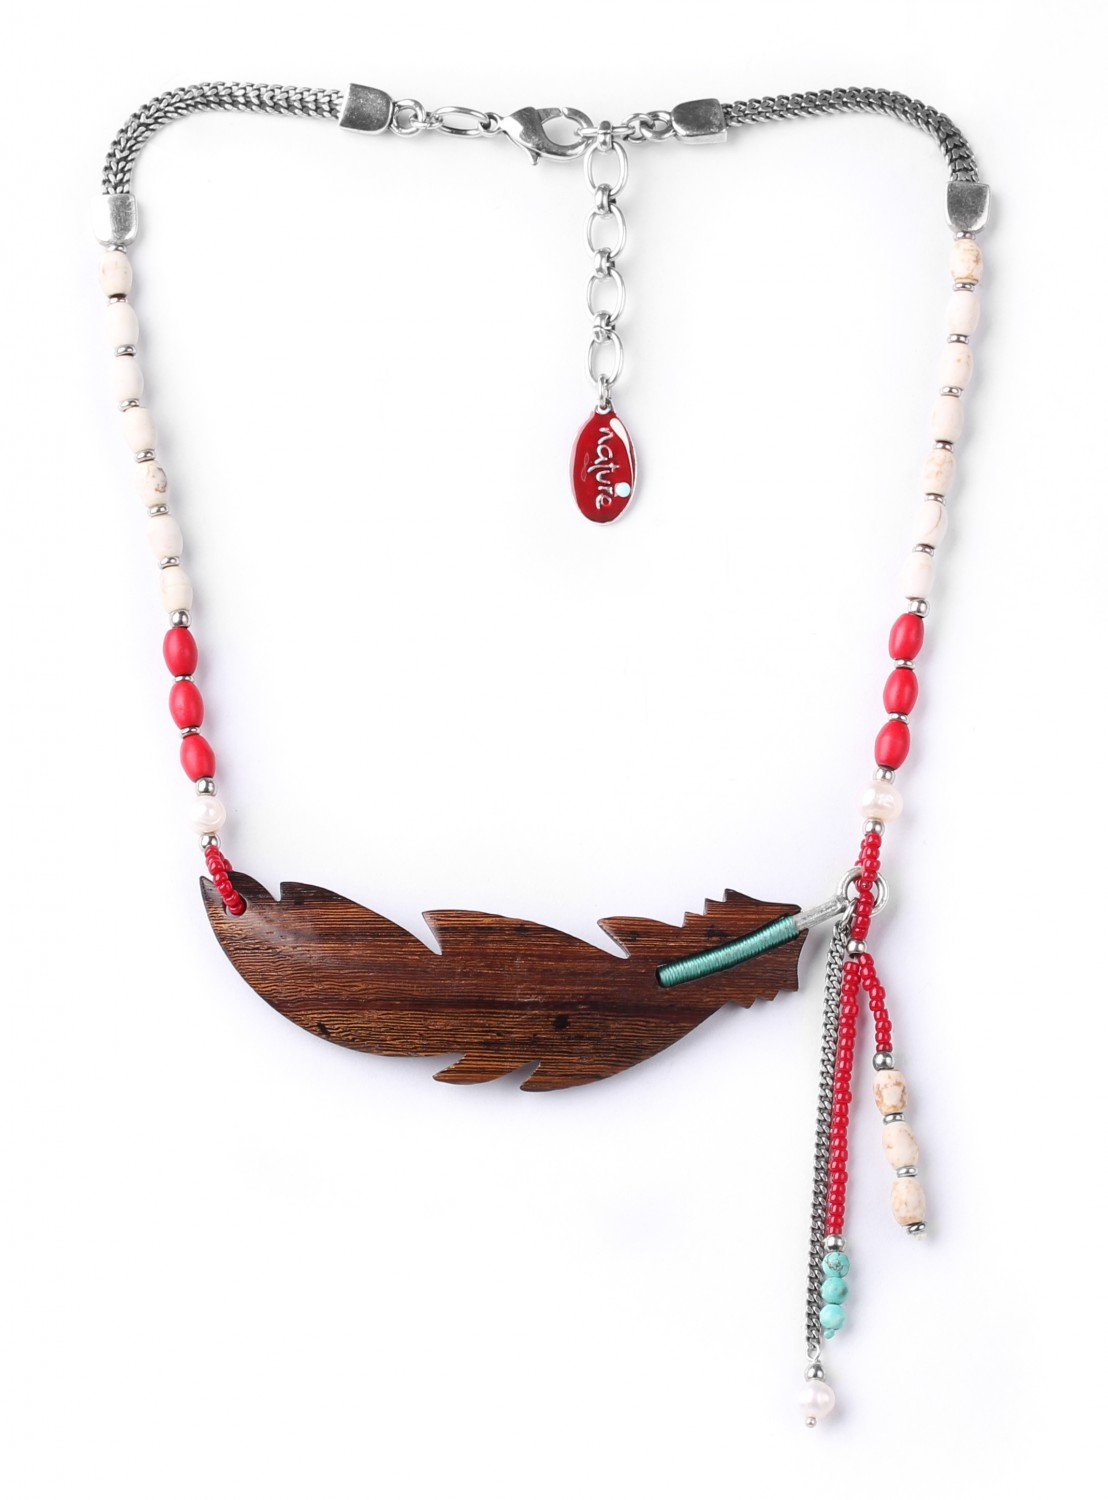 INDIANA collier grande plume